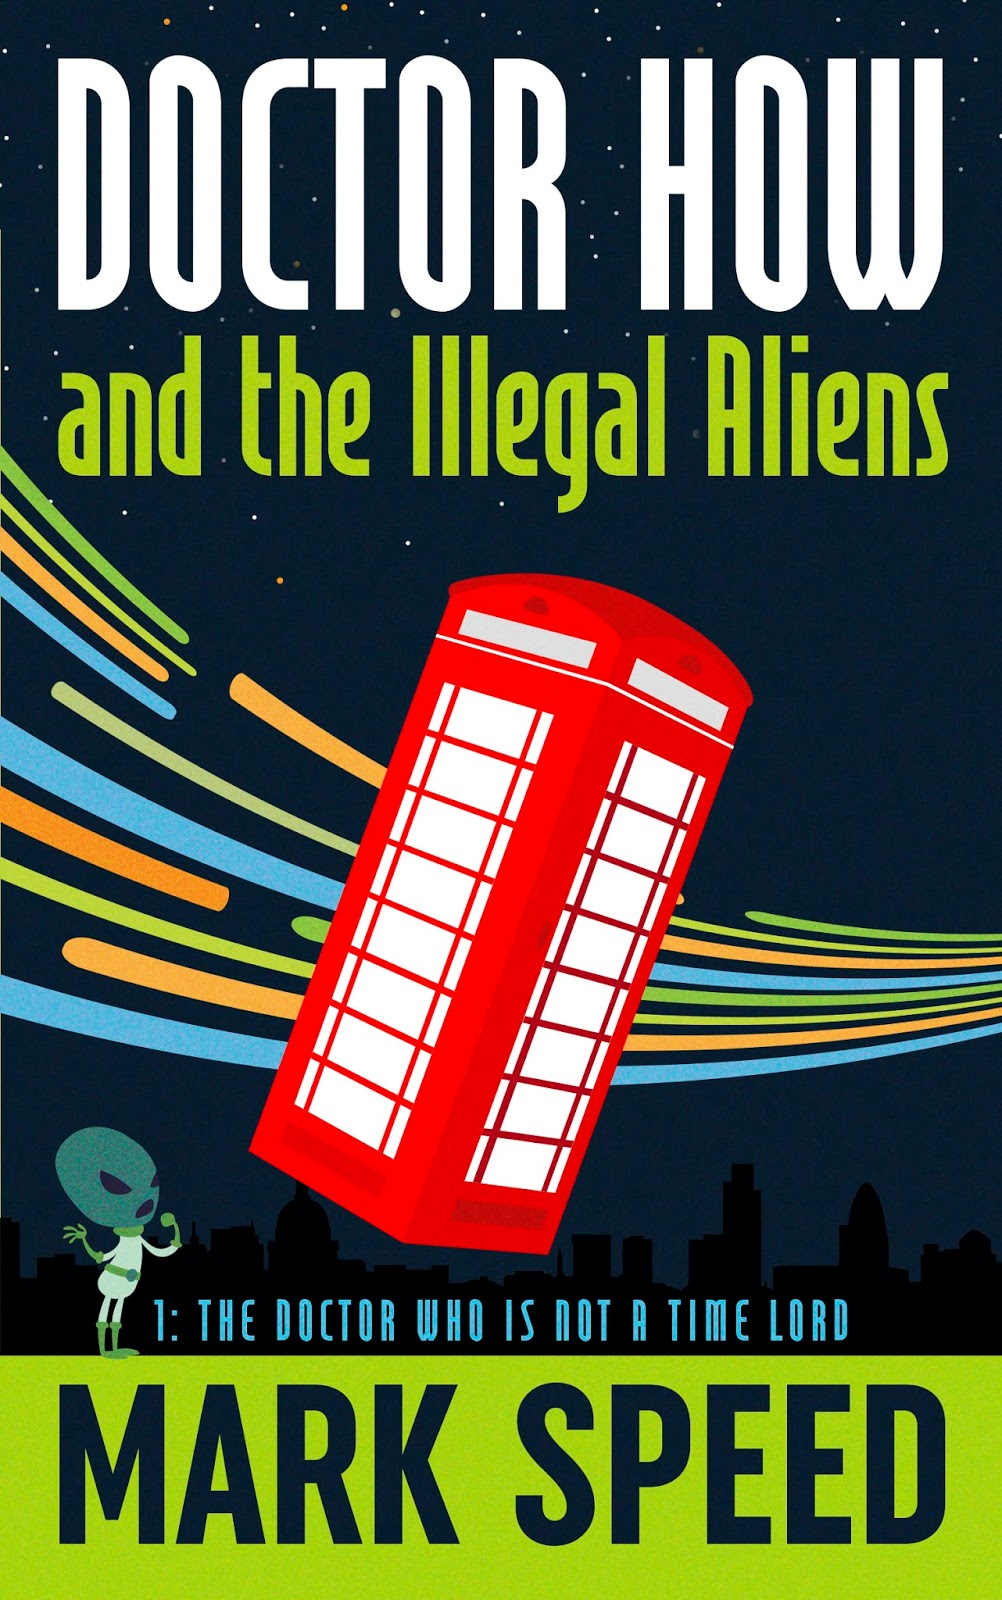 Interview with humorous sci-fi novelist Mark Speed